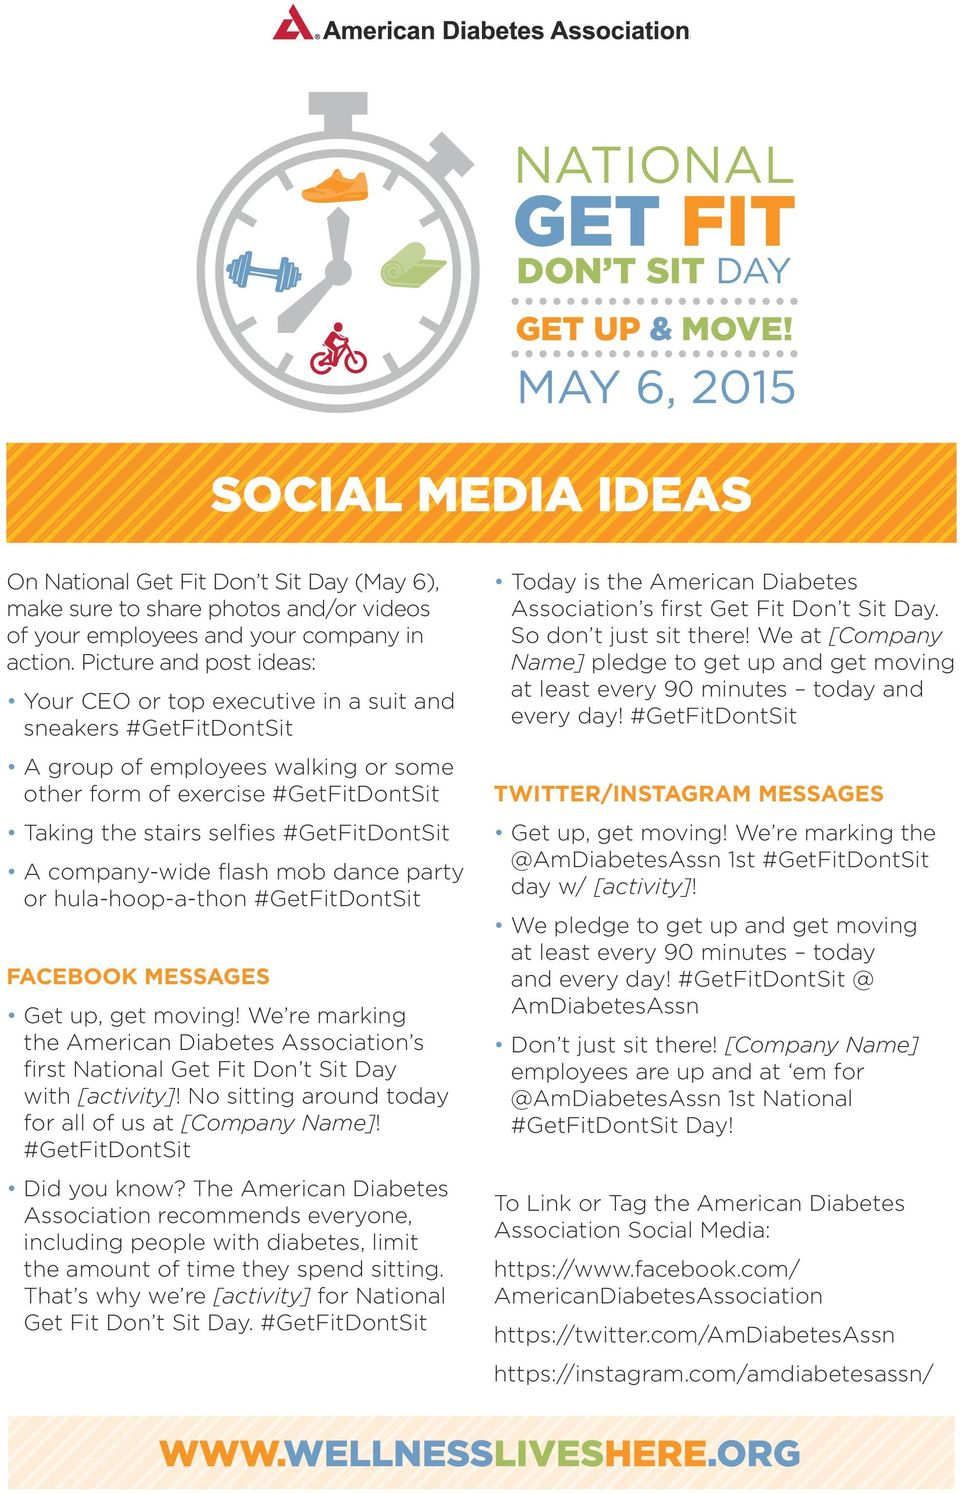 #GetFitDontSit A company-wide flash mob dance party or hula-hoop-a-thon #GetFitDontSit FACEBOOK MESSAGES Get up, get moving!